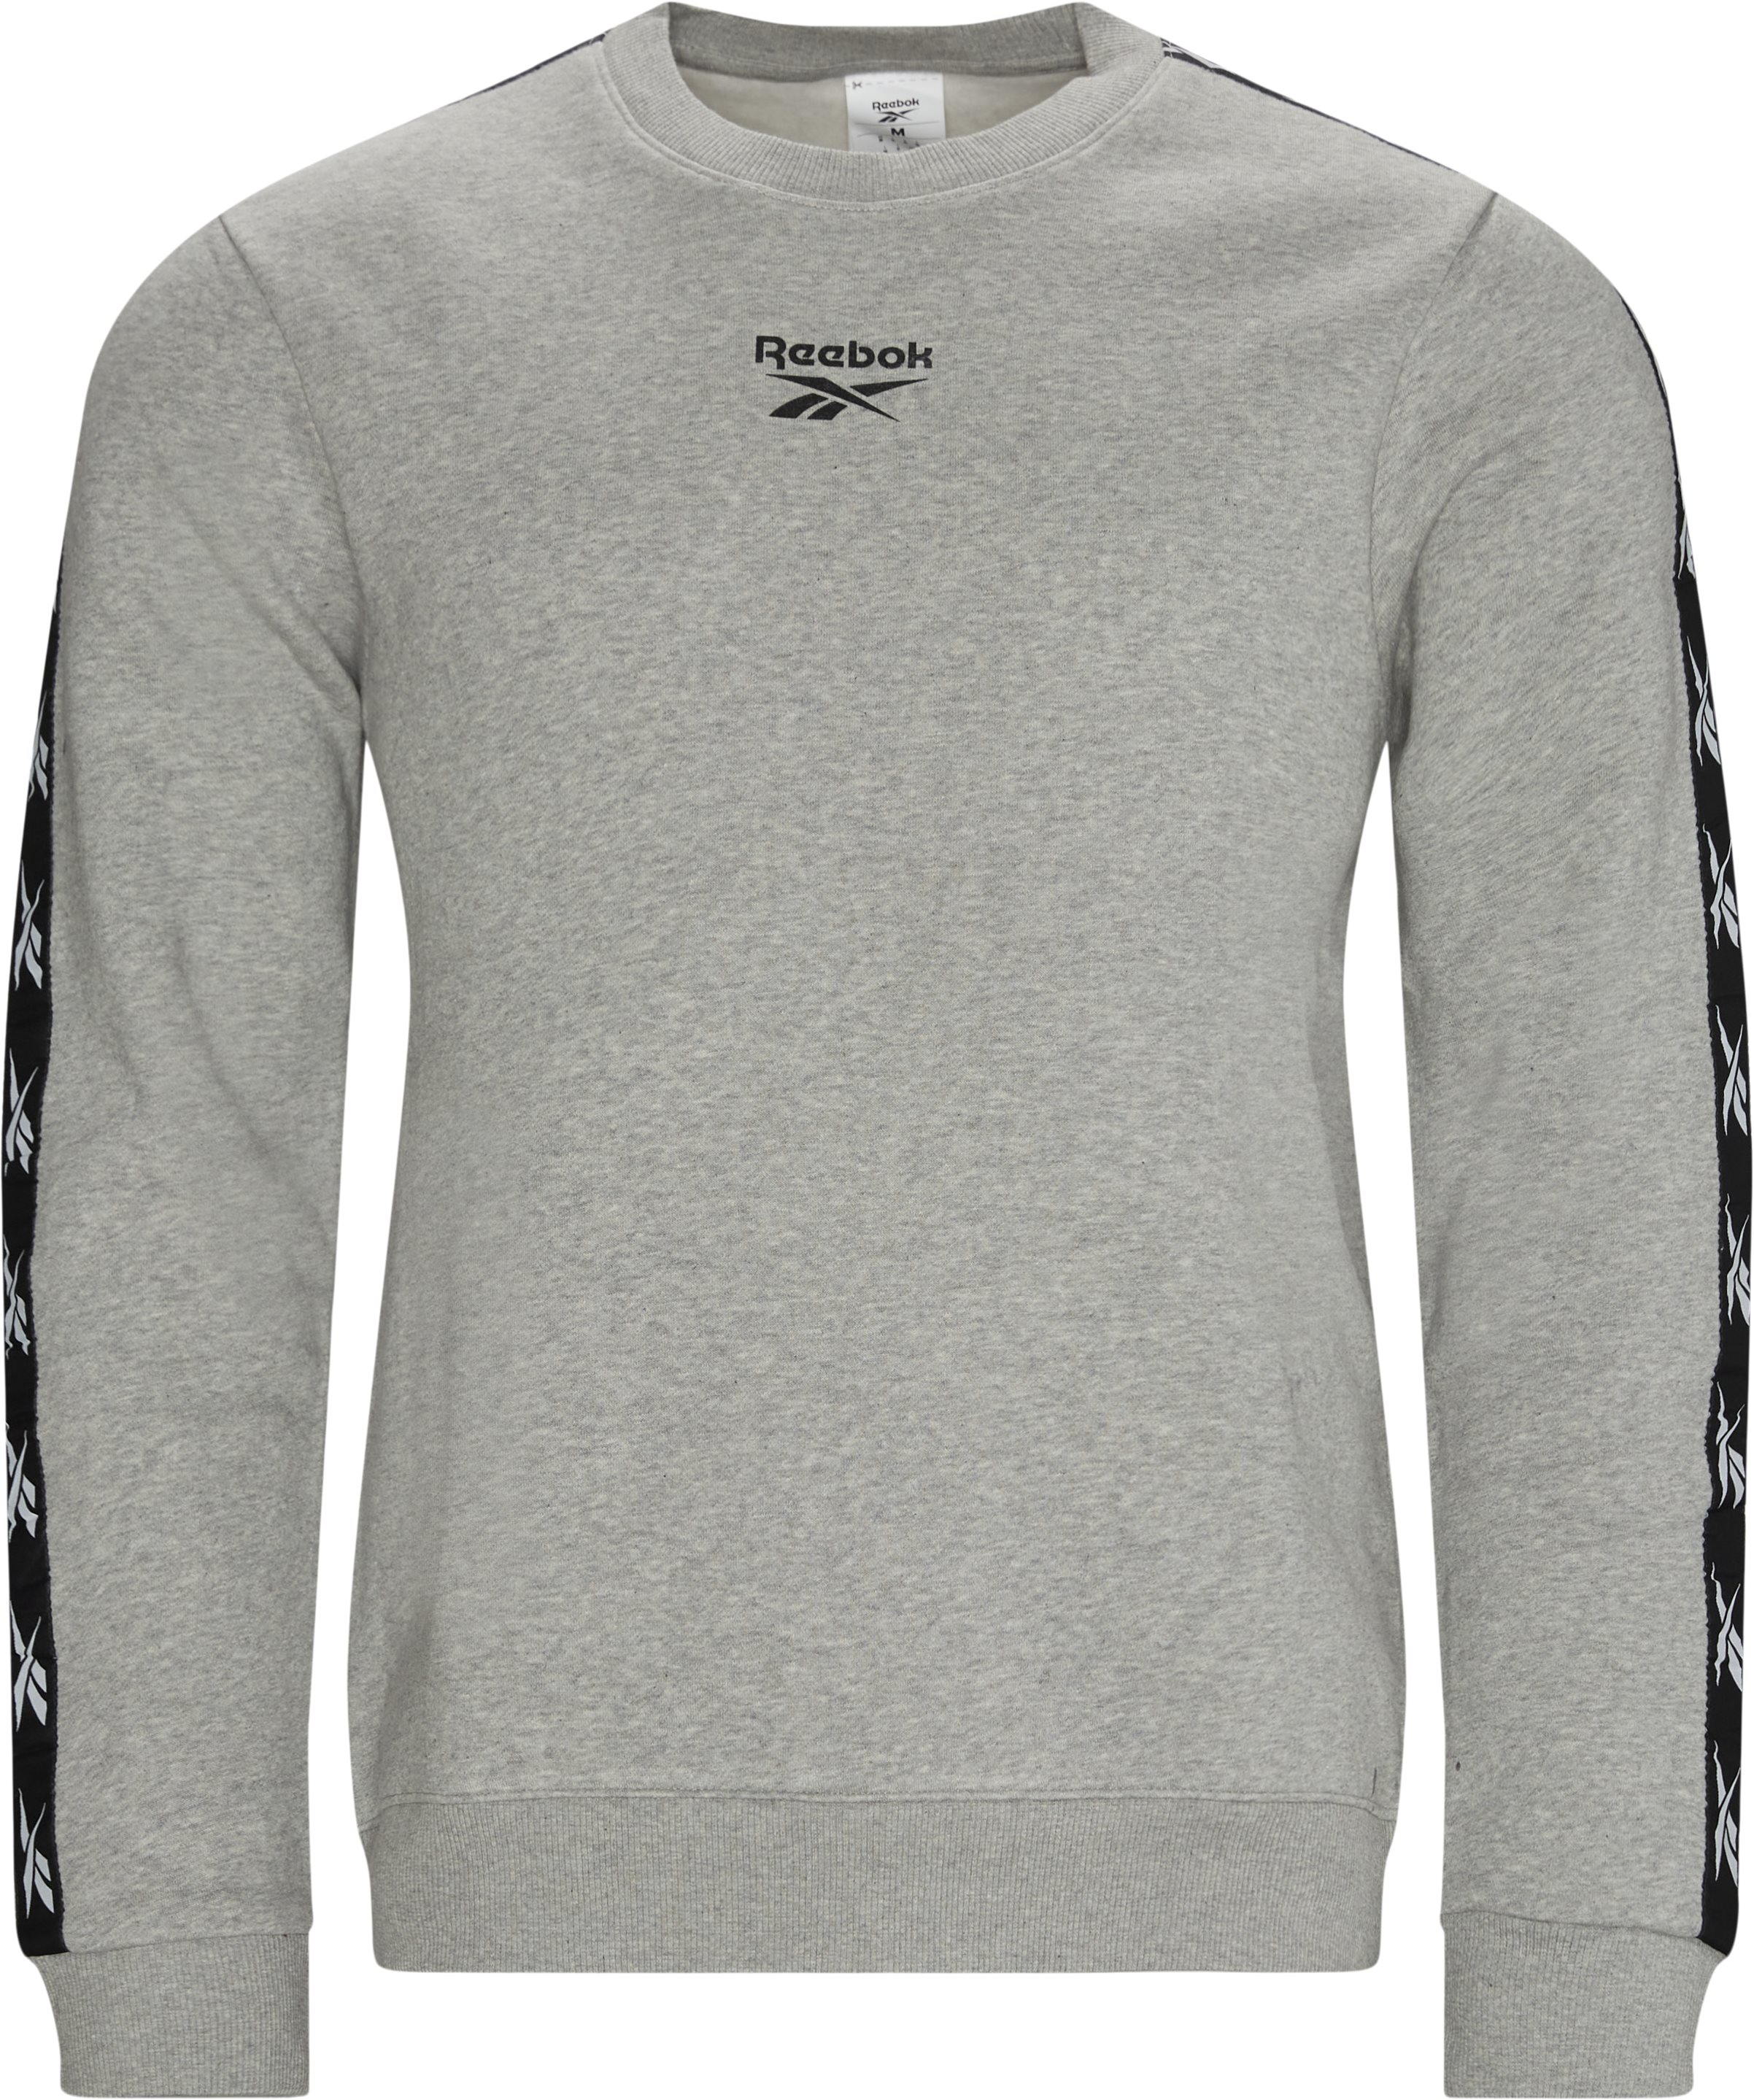 Te Tape Crewneck - Sweatshirts - Regular - Grå